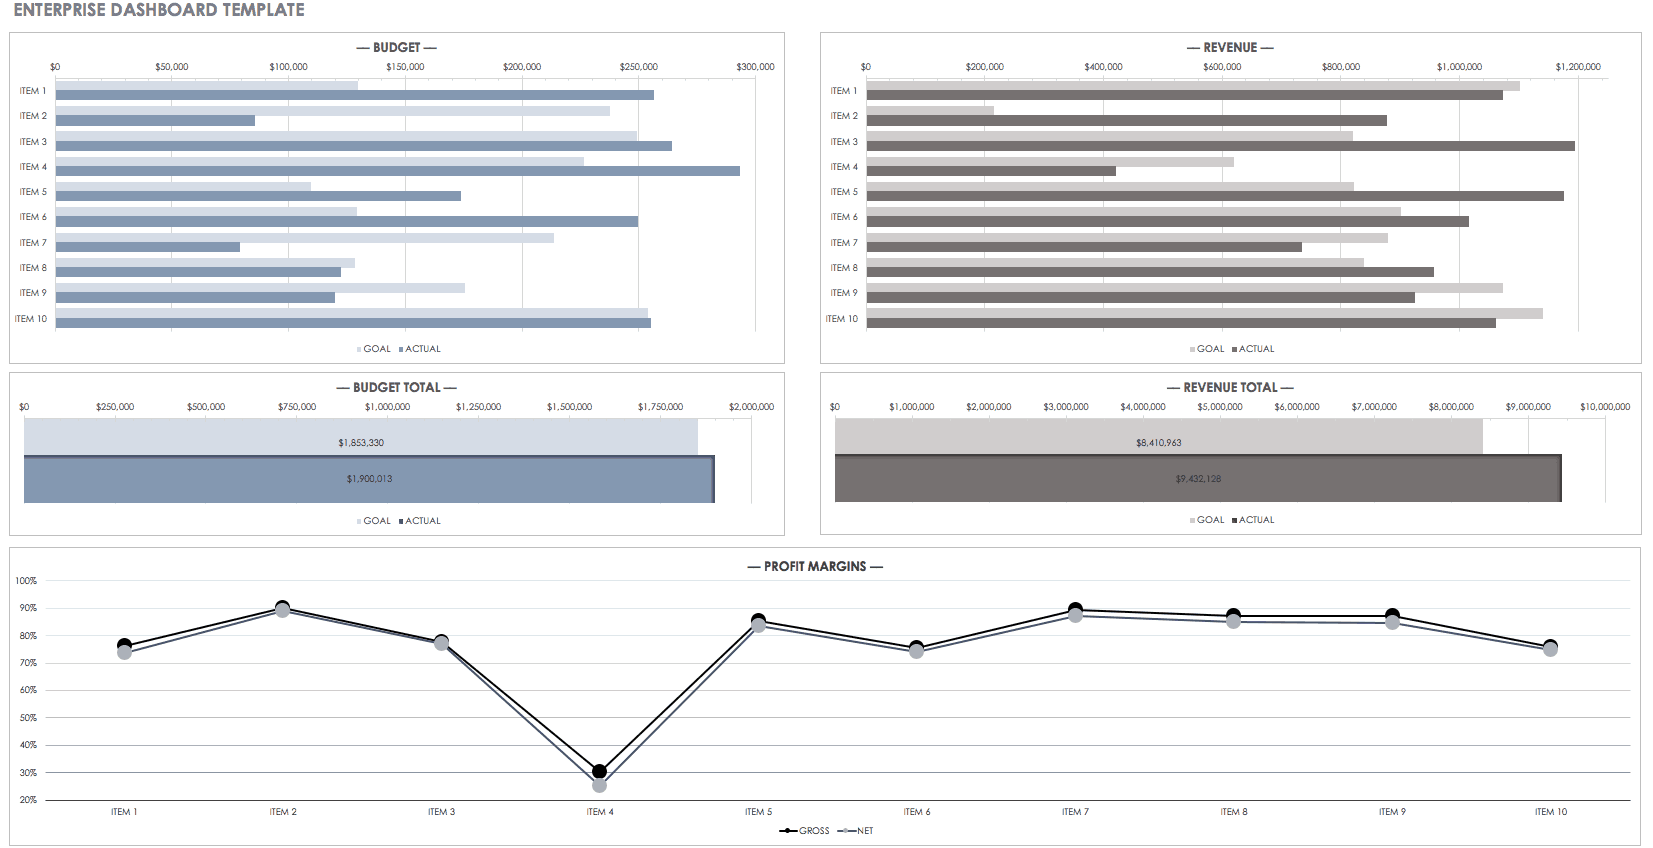 Enterprise Dashboard Template